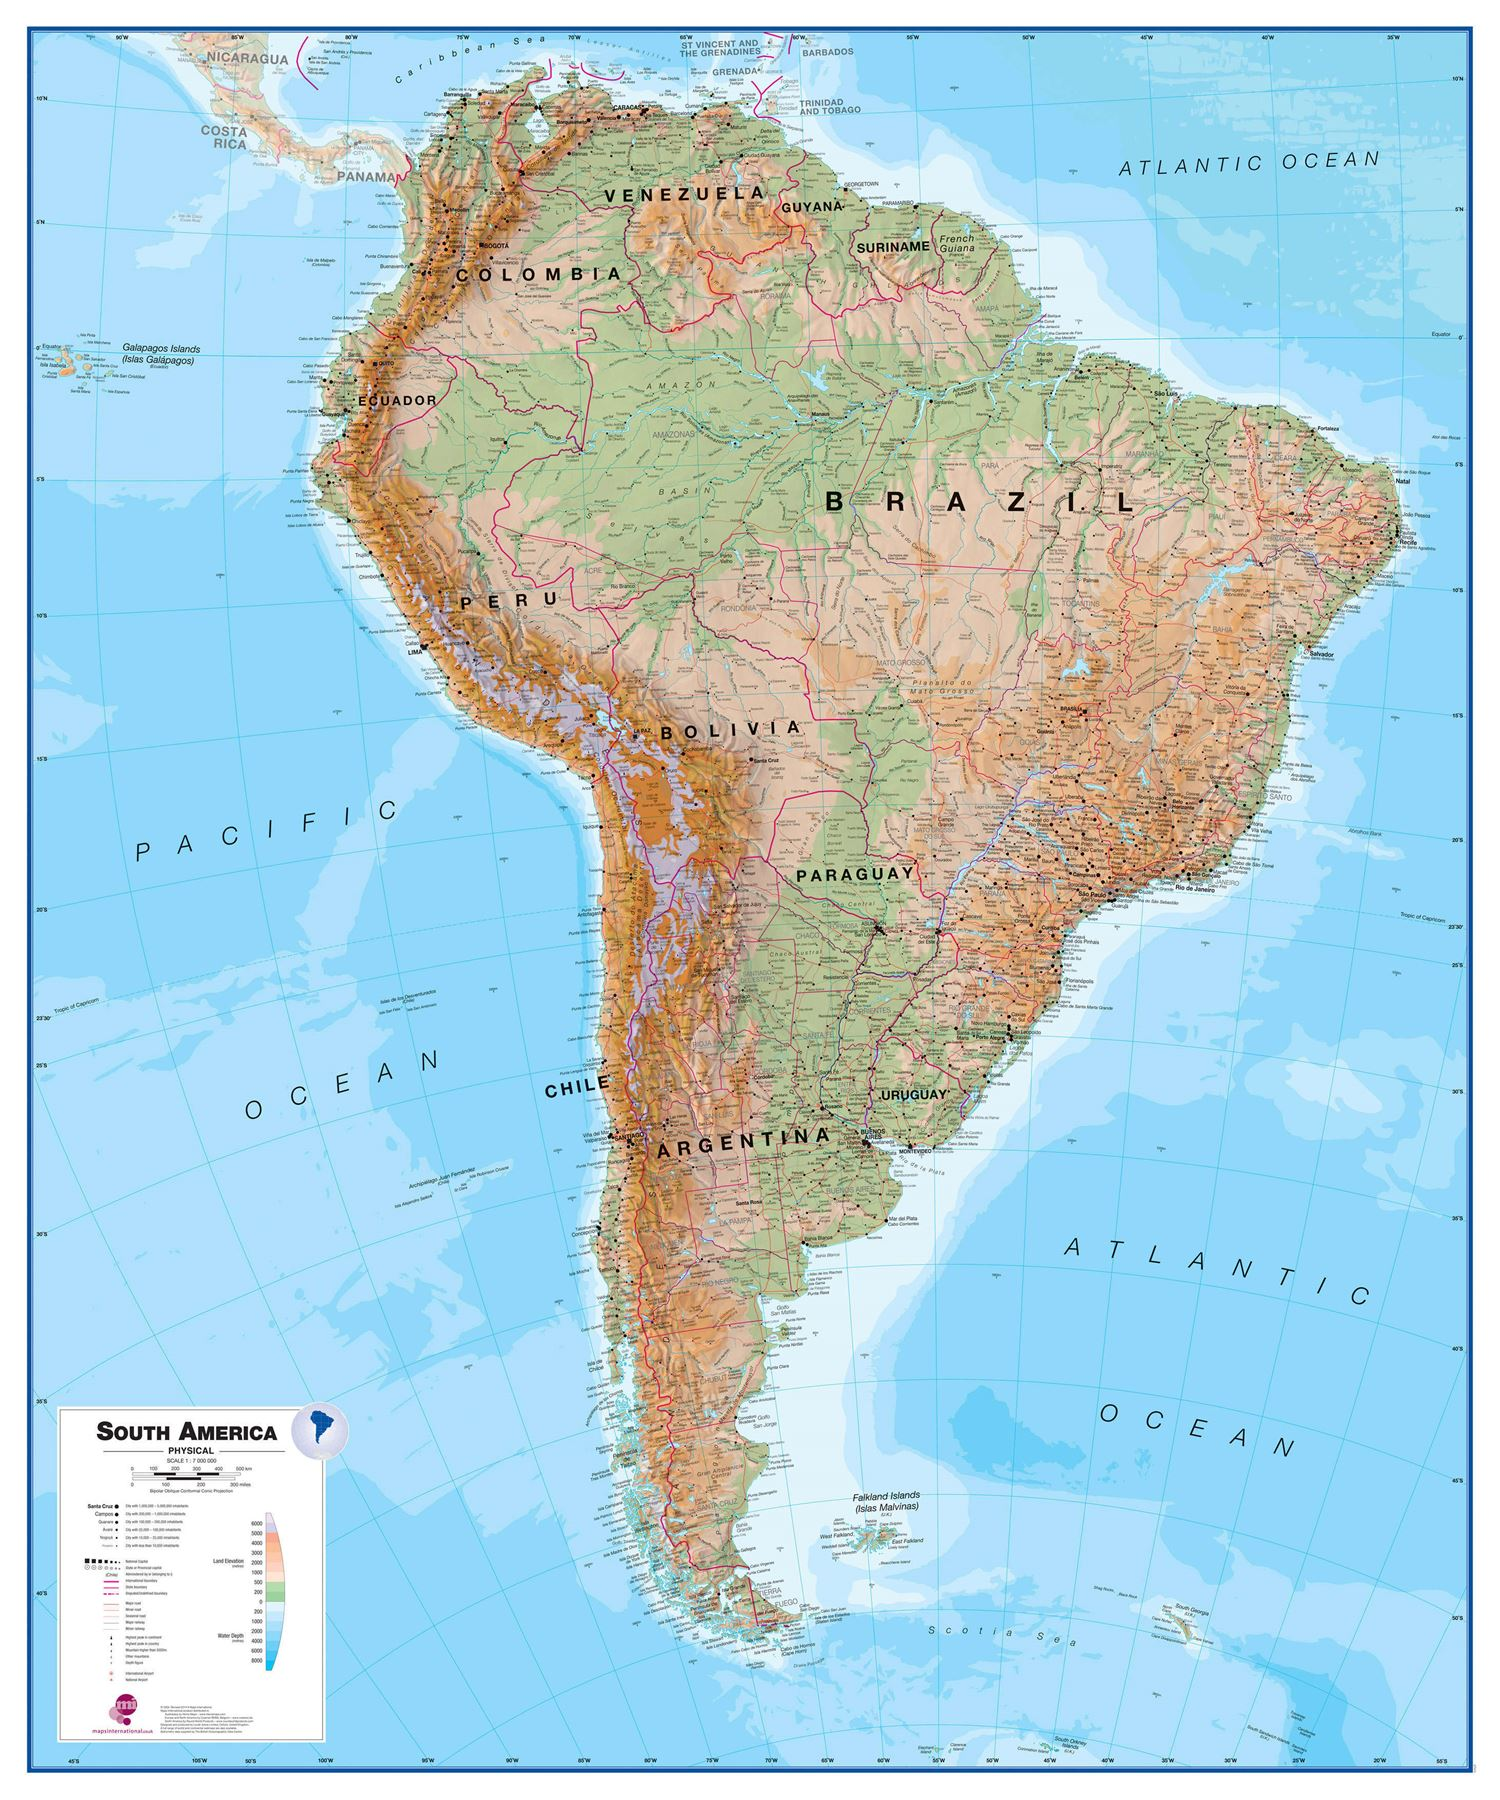 South America Physical Map for Office - Rollerblind, Acrylic ...